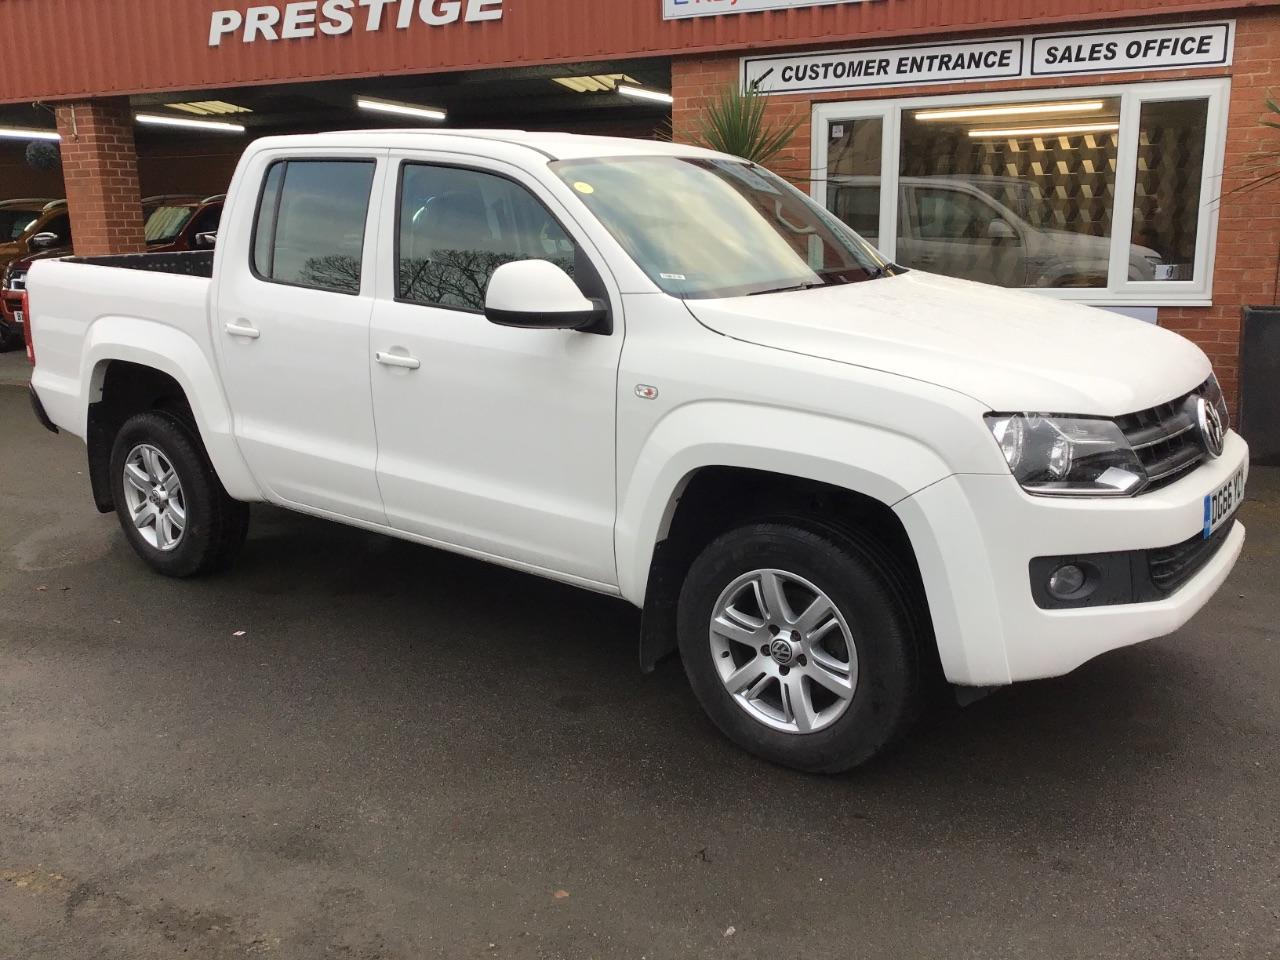 Volkswagen Amarok D/Cab Pick Up Trendline 2.0 BiTDI 180 4MOTION Sel  PLUS VAT Pick Up Diesel White